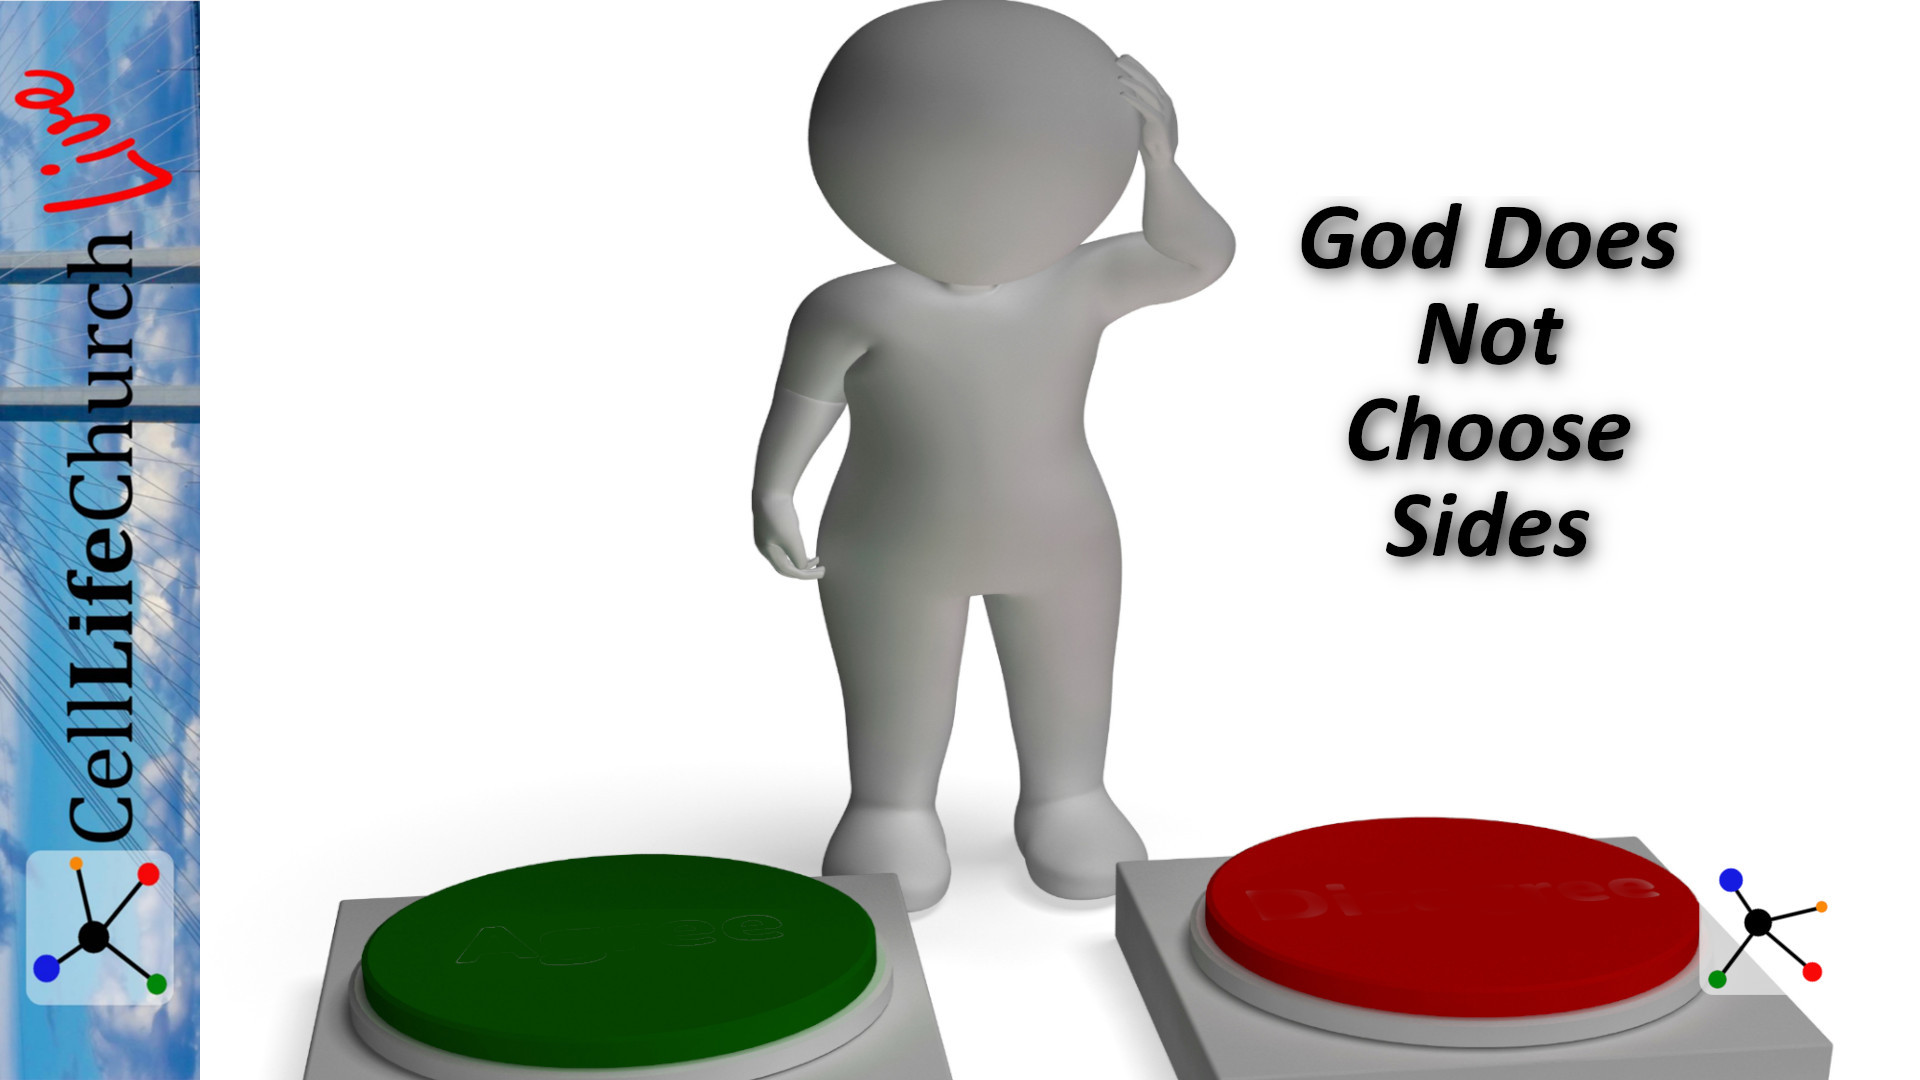 God Does Not Choose Sides